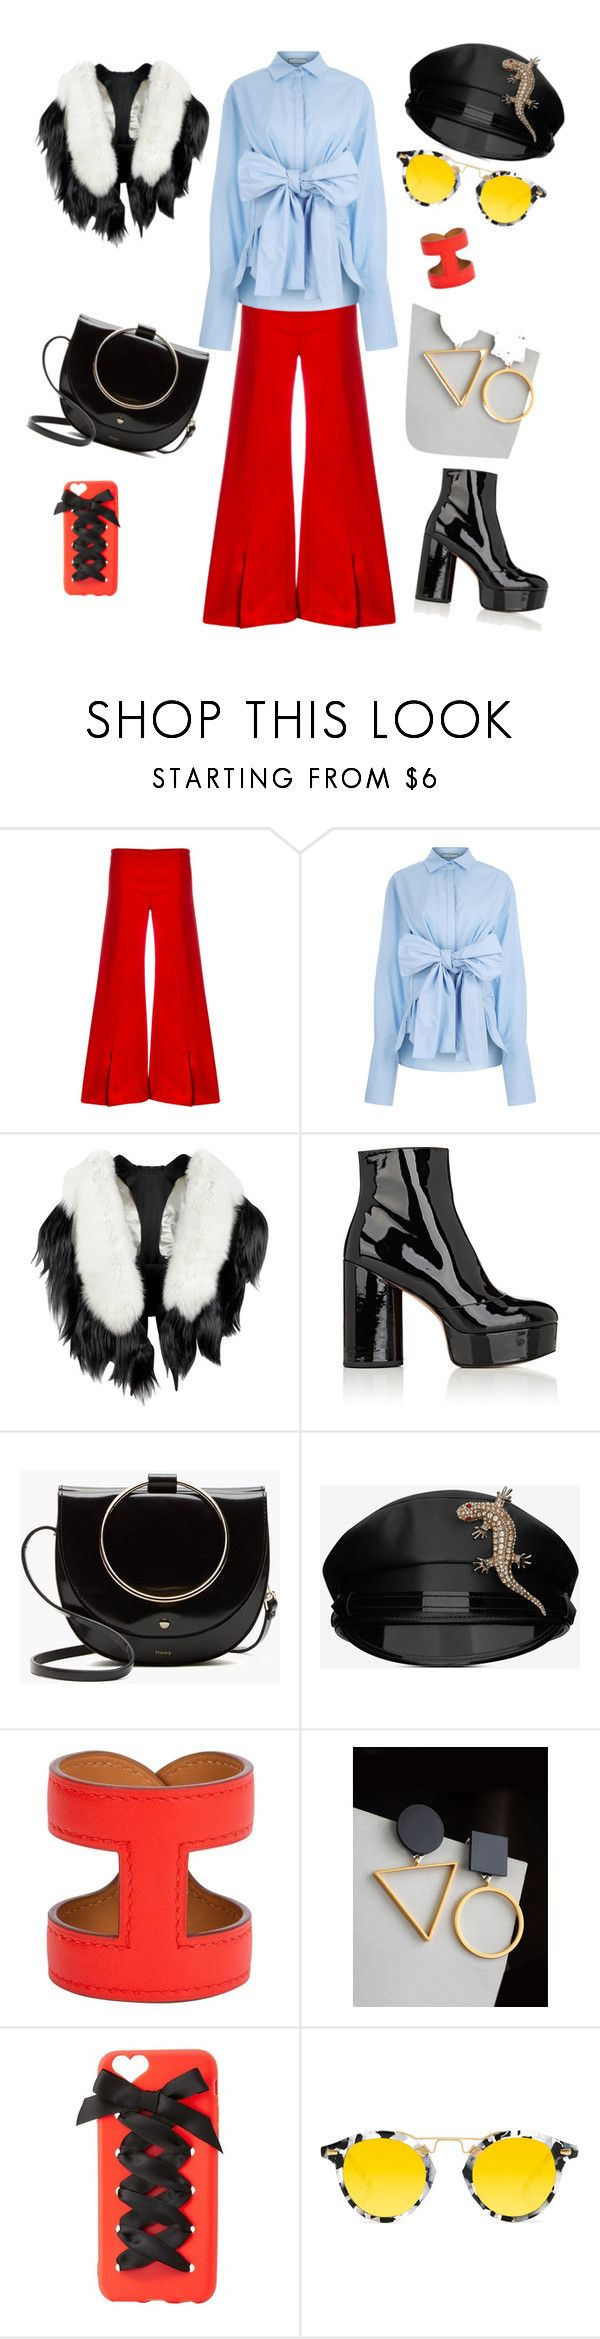 """""""с чем носить красные штаны"""" by domorg-penza ❤ liked on Polyvore featuring Thierry Mugler, CO/MUN, Fearfur, Marc Jacobs, Yves Saint Laurent, Hermès, WithChic, Charlotte Russe and Krewe"""